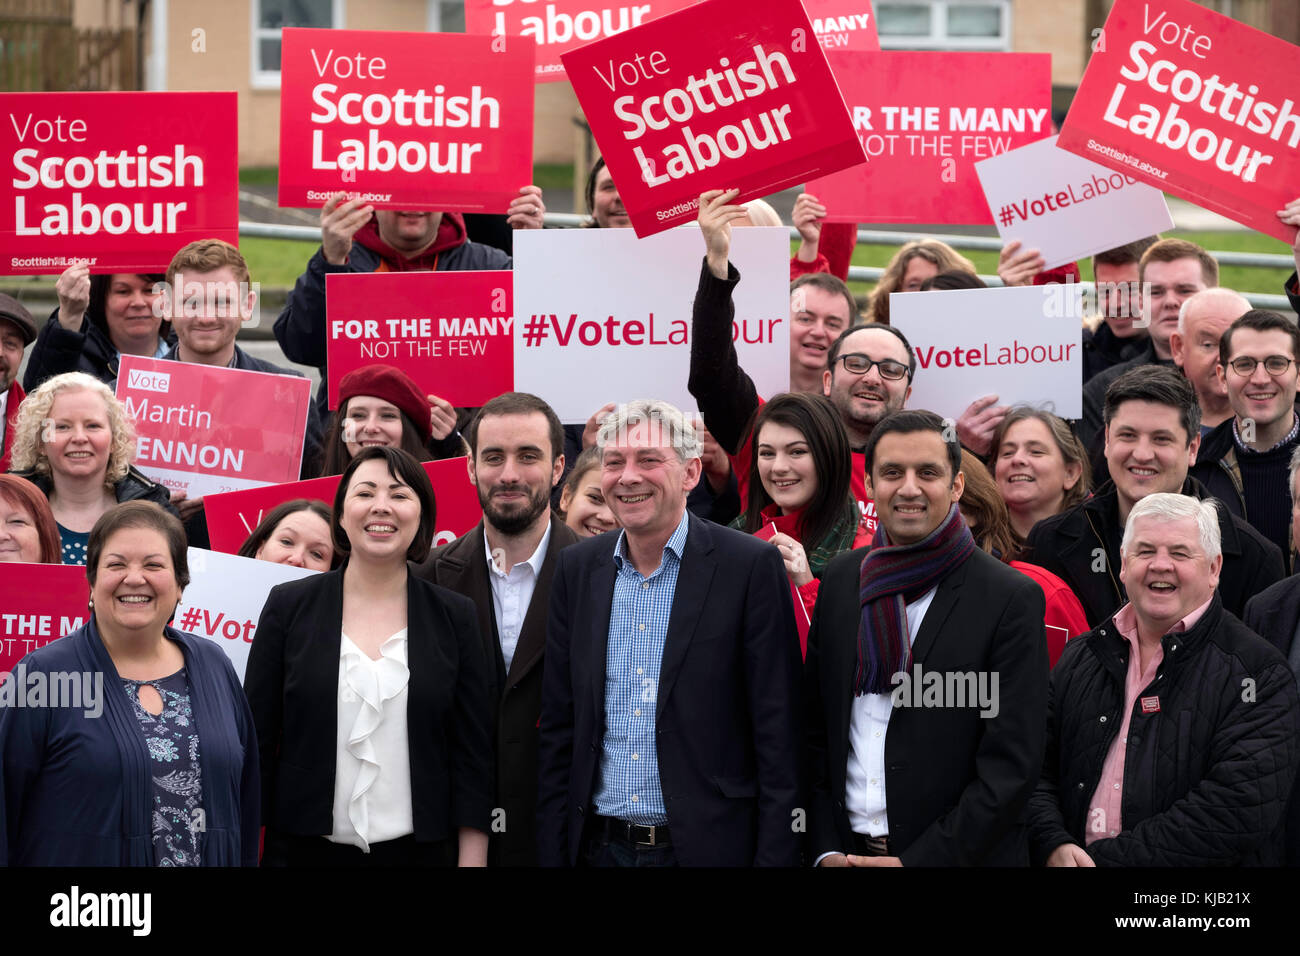 Richard Leonard celebrated with party activists and MSPs after winning Scottish Labour Party Leadership contest, - Stock Image